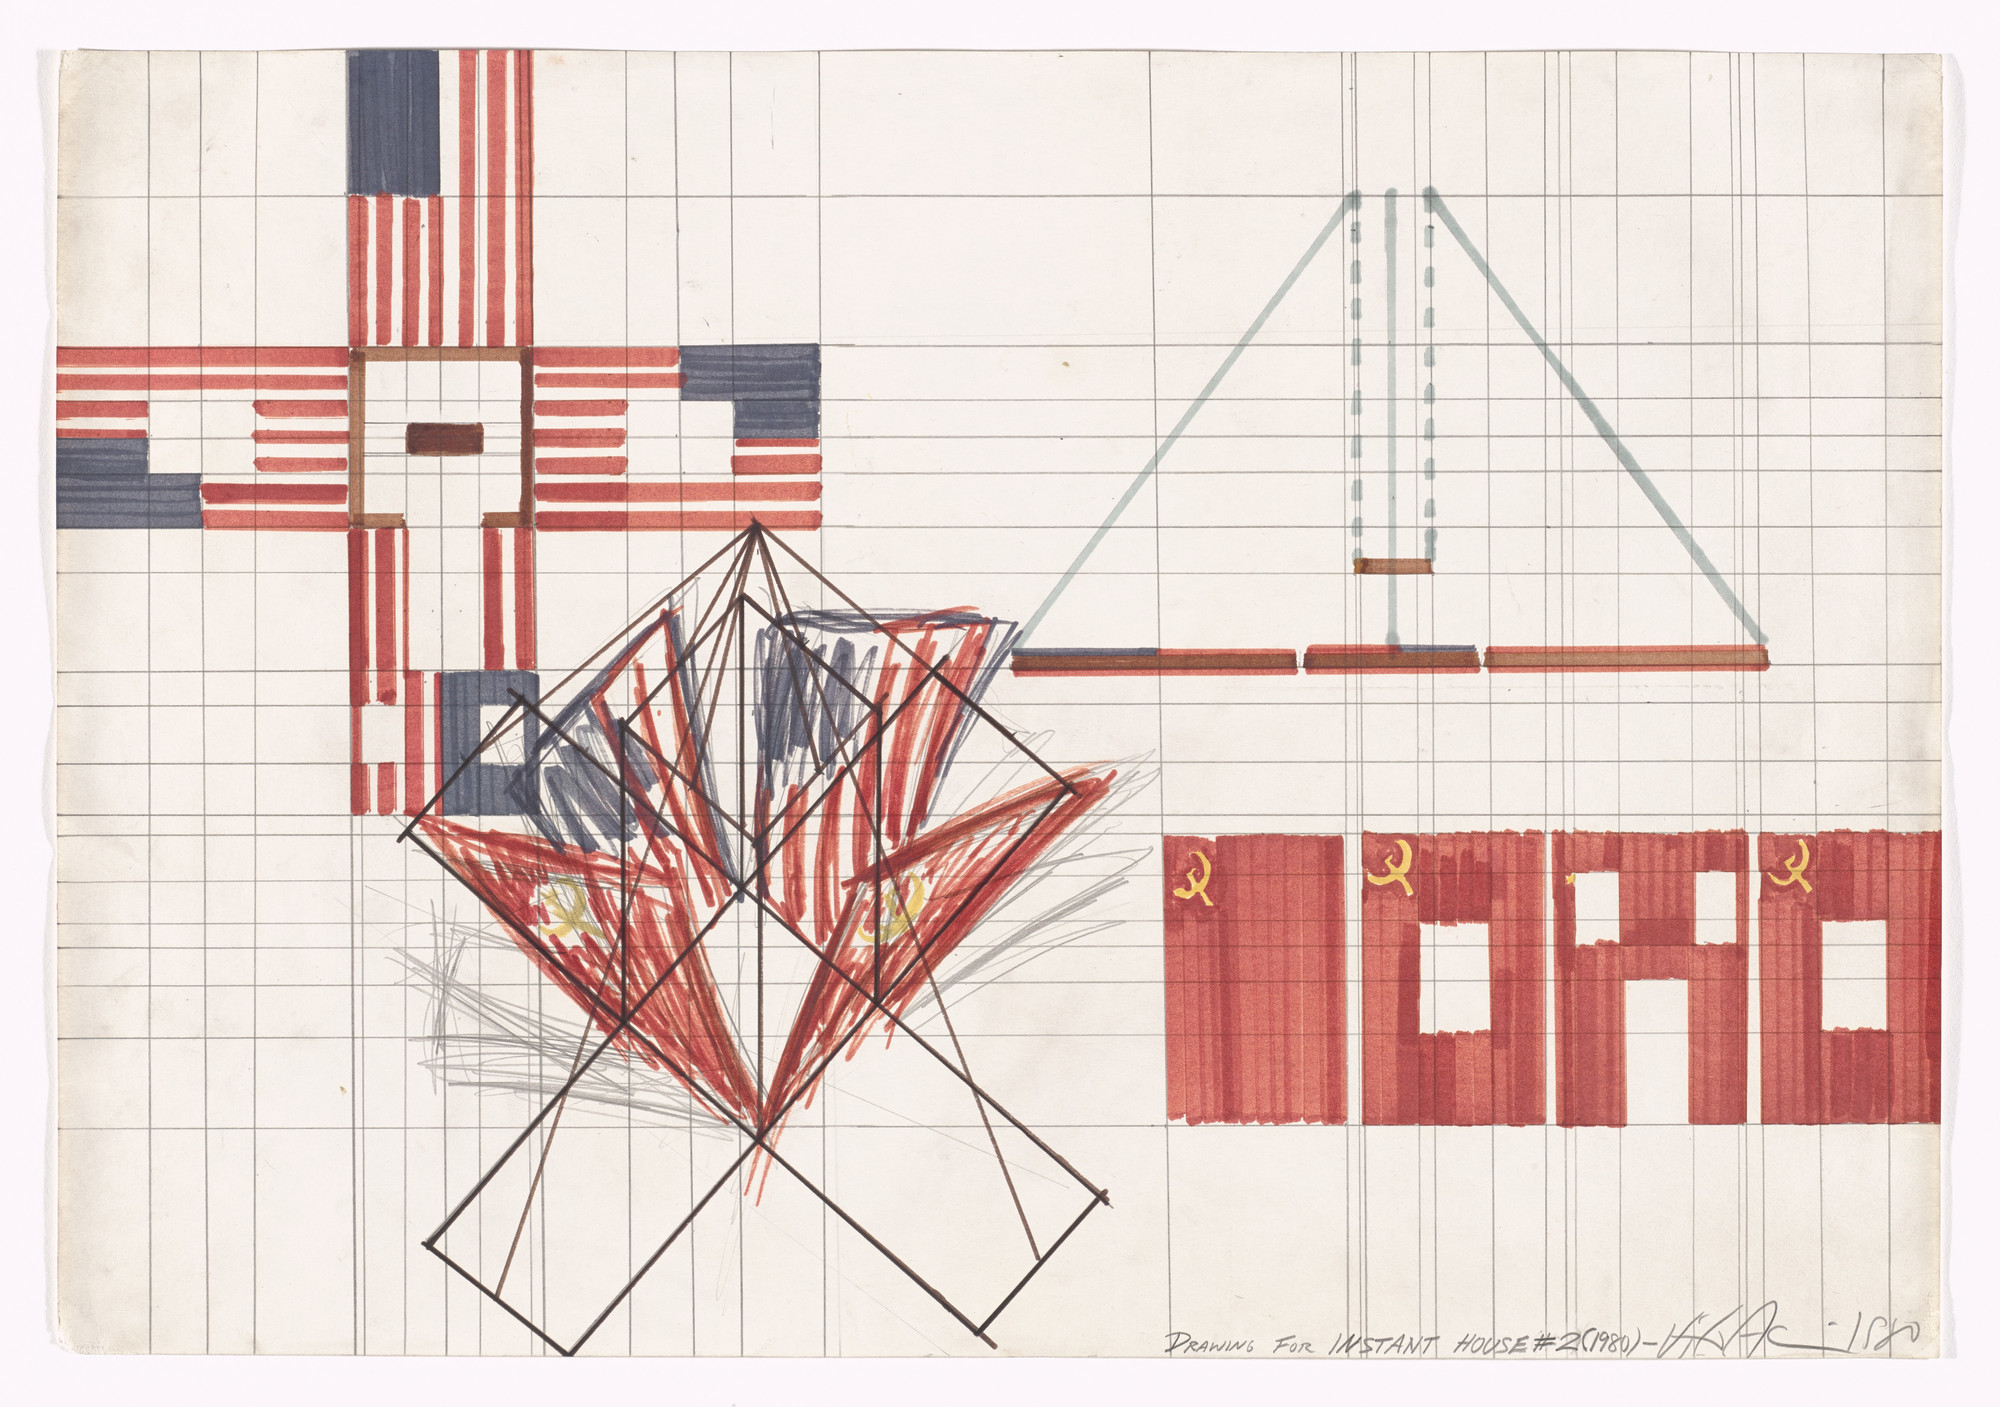 Vito Acconci. Instant House #2, Drawing. 1980